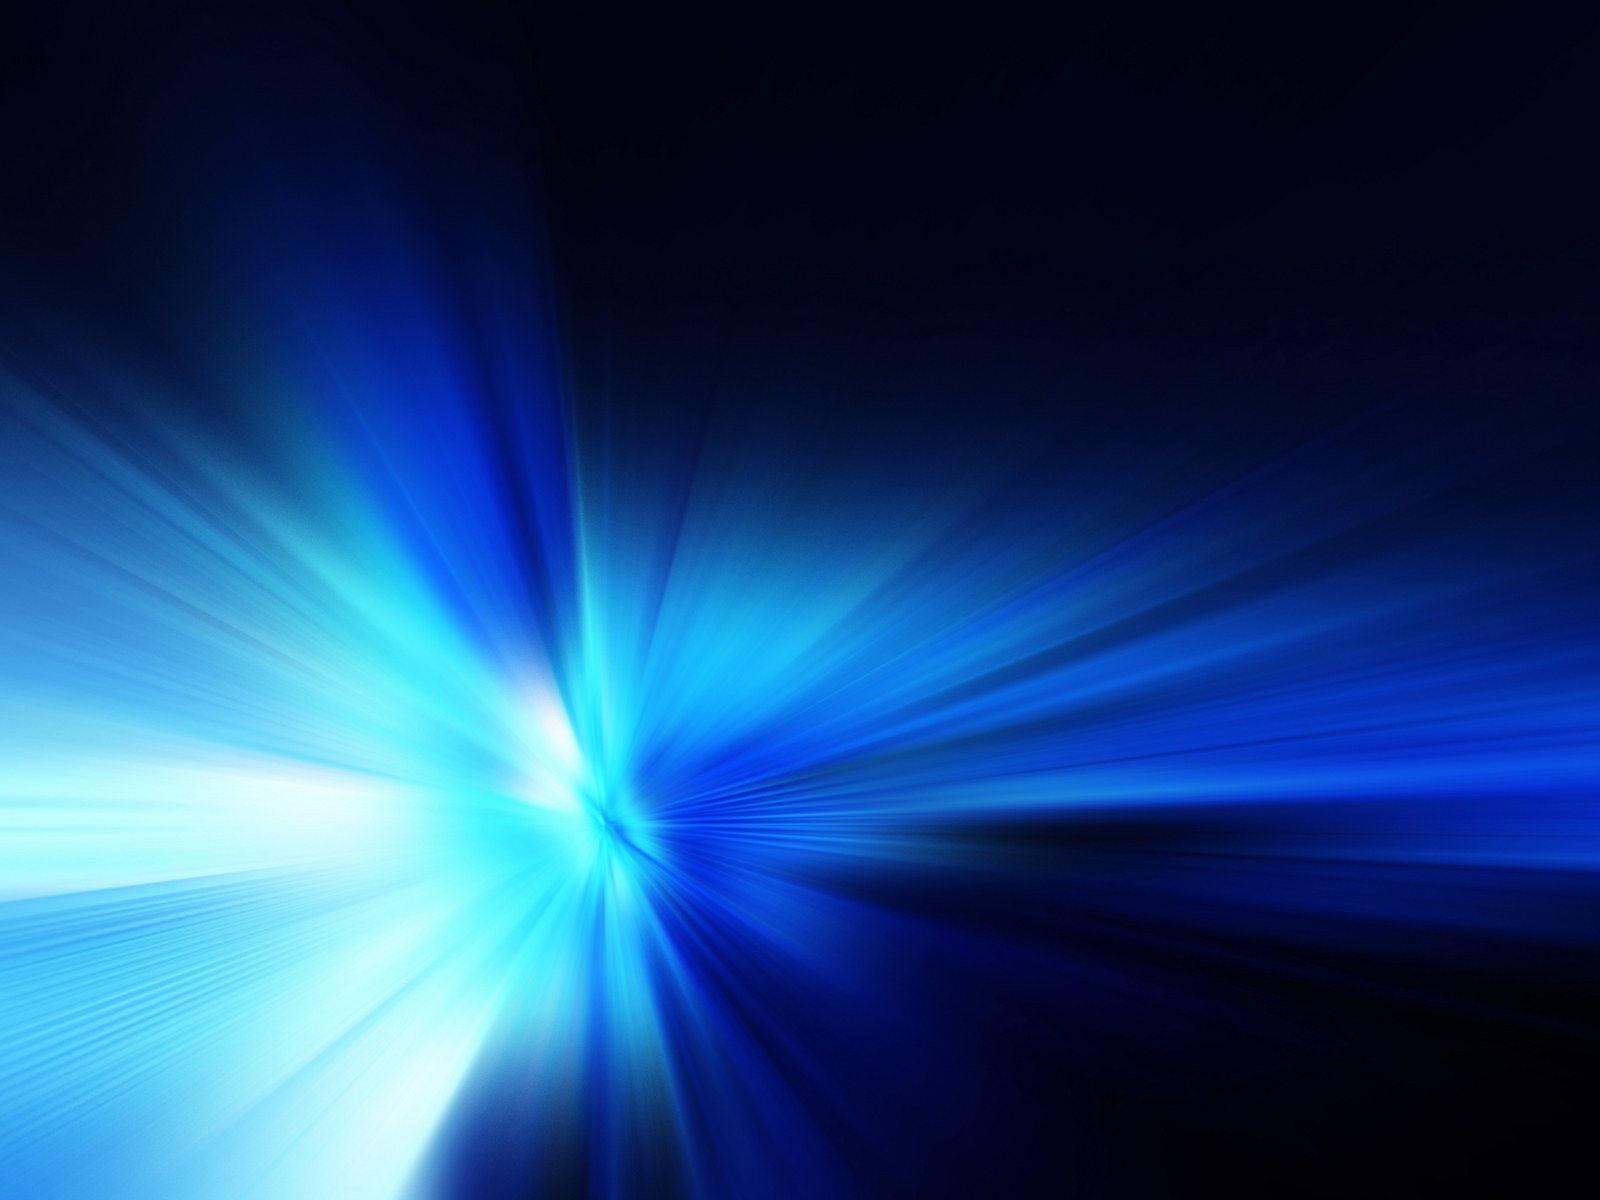 blue abstract light effect - photo #6